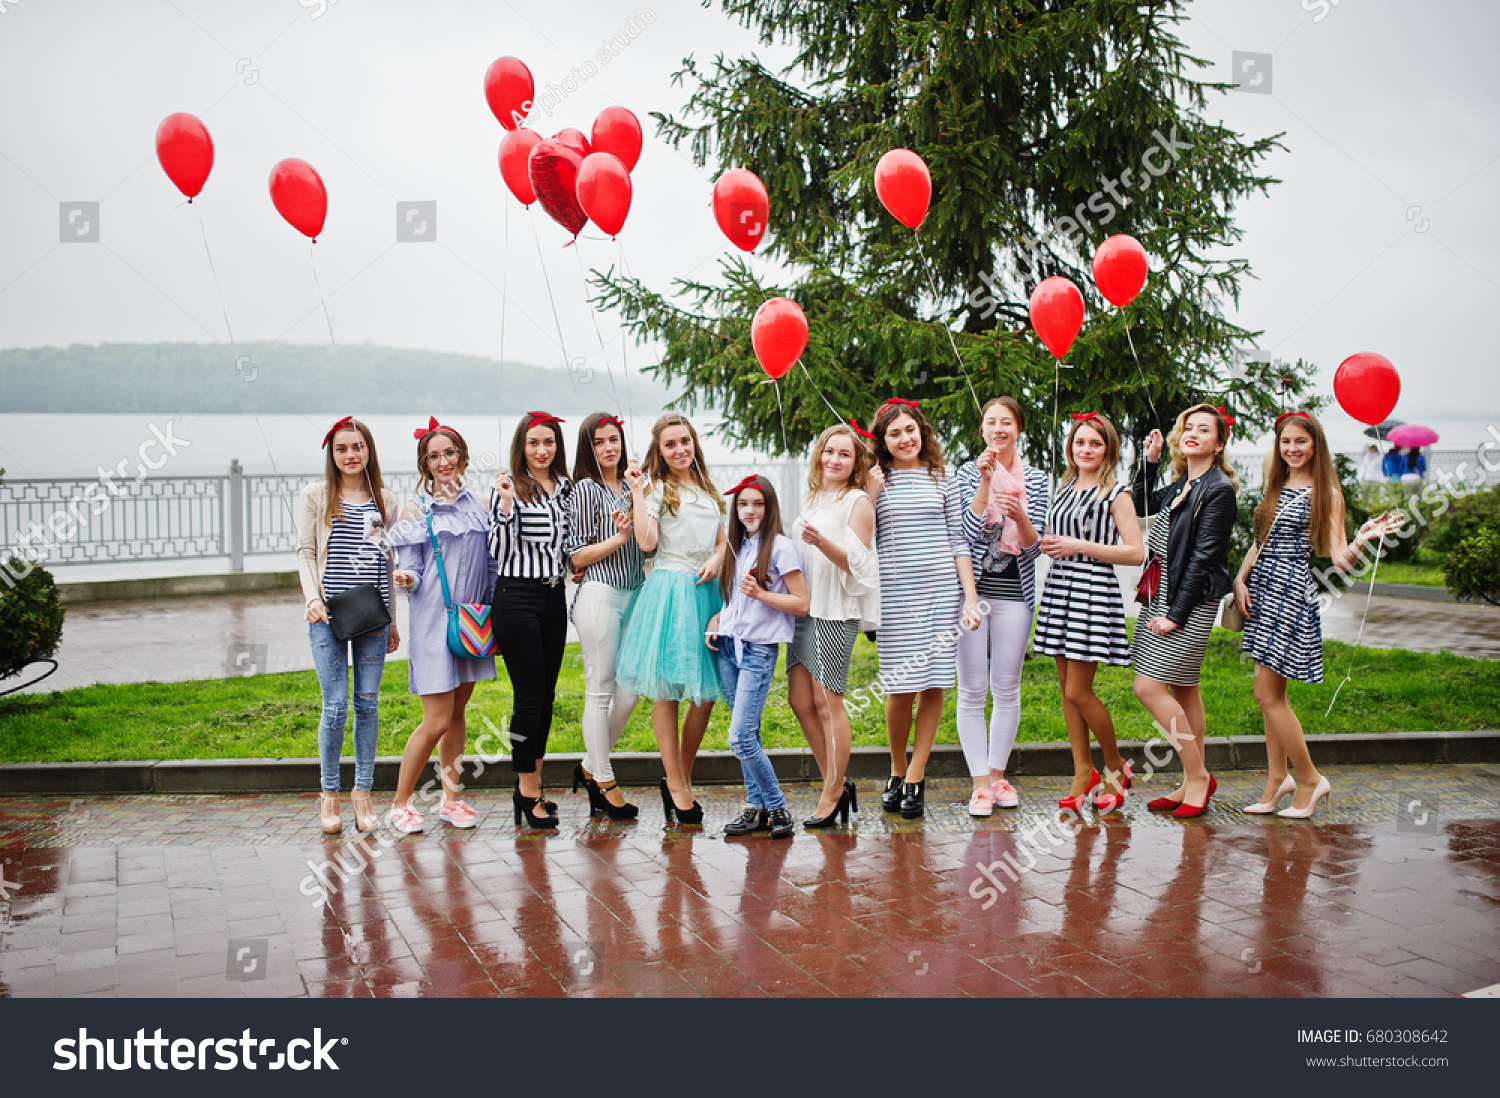 Eleven amazingly-looking braidsmaids with stunning bride posing with red heart-shaped balloons on the pavement against the lake in the background. #680308642